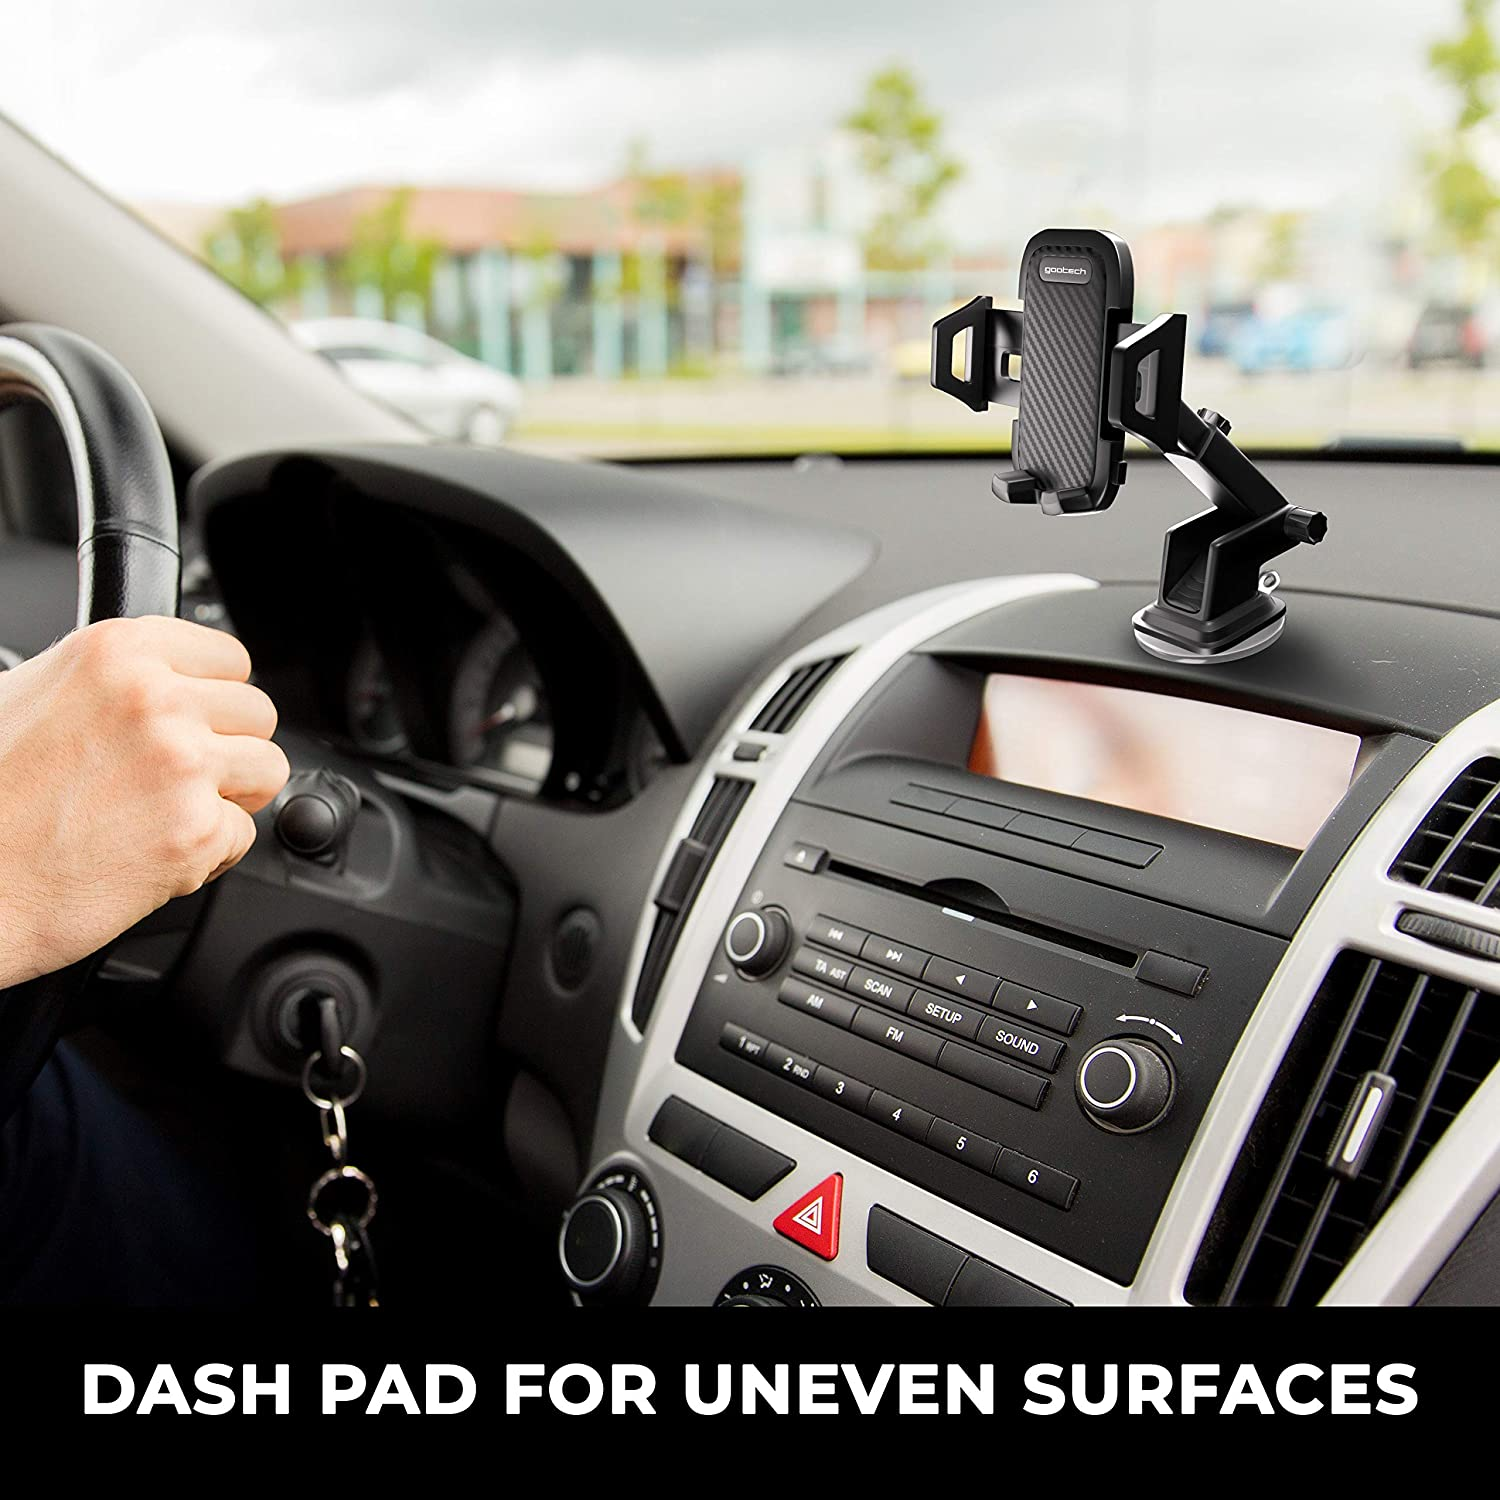 S9 S9+ 8 Xs Max Carbon Panel X Universal Car Phone Mount Galaxy S10 8+ 7+ S8 6+ XR Compatible with iPhone Xs 6 S10+ 7 S8+ Dashboard /& Windshield Car Phone Holder